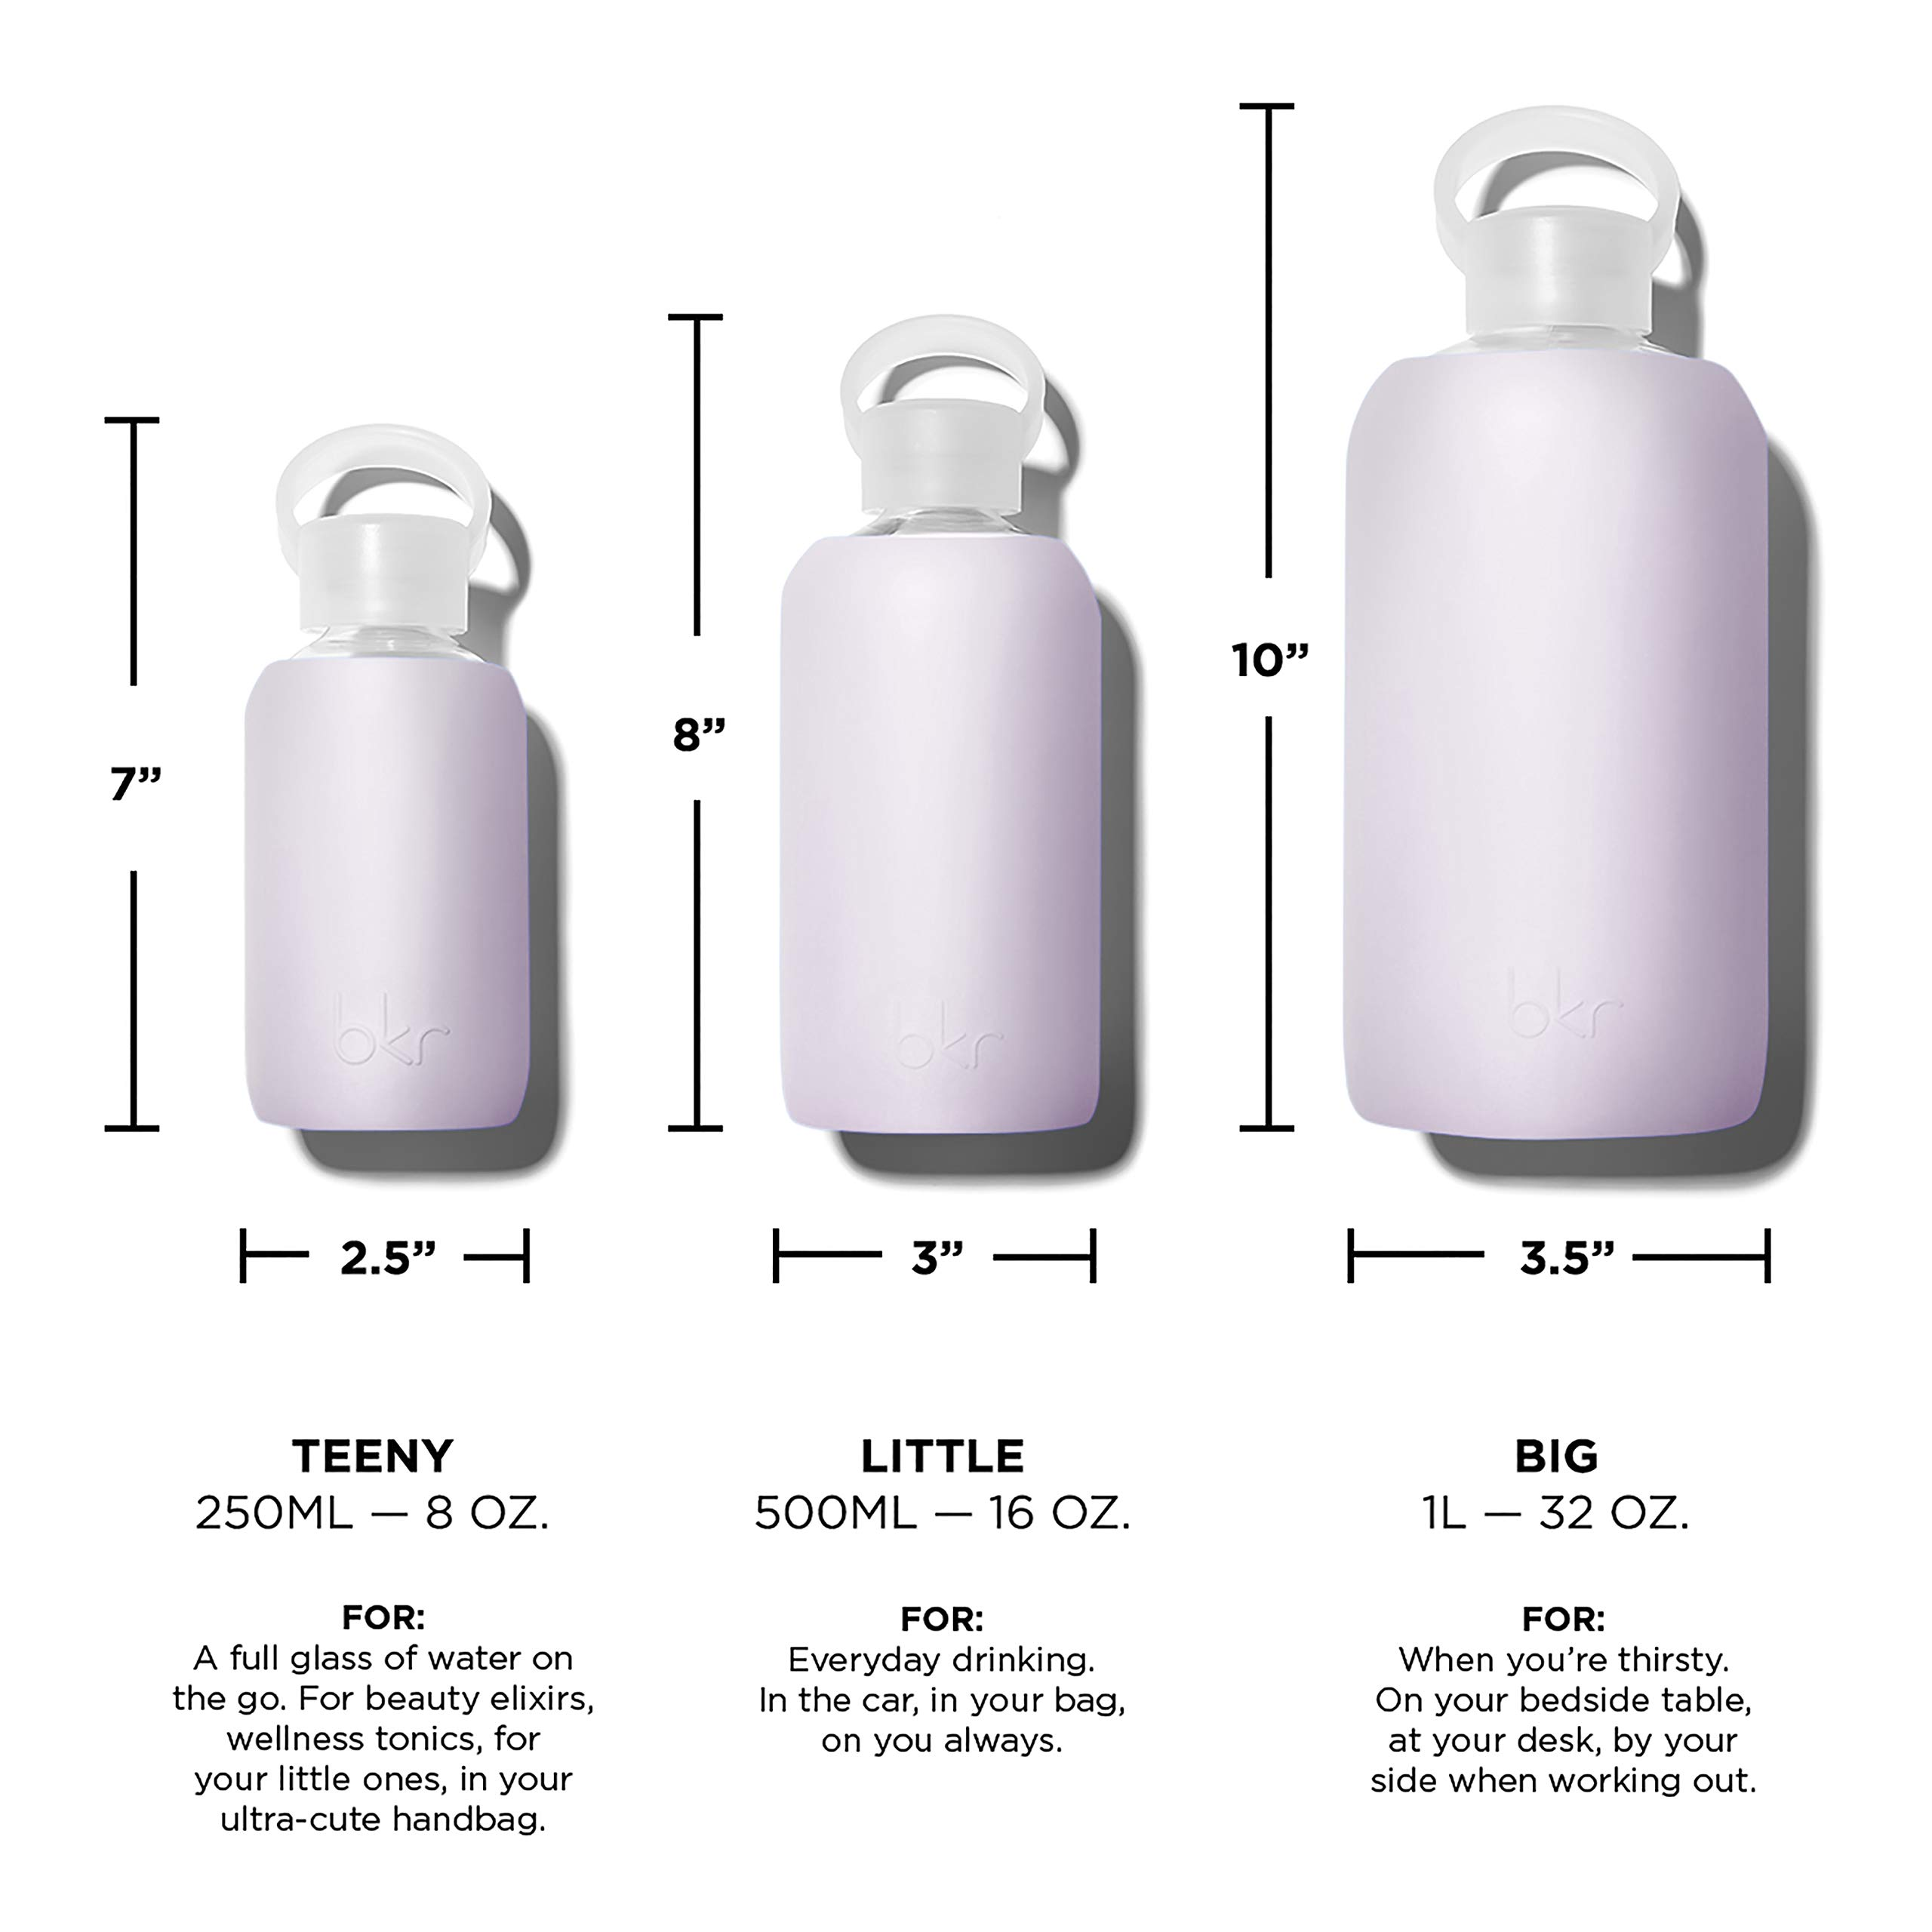 bkr Lala Glass Water Bottle with Smooth Silicone Sleeve for Travel, Narrow Mouth, BPA-Free & Dishwasher Safe, Opaque Lavender Fog, 16 oz / 500 mL by bkr (Image #5)